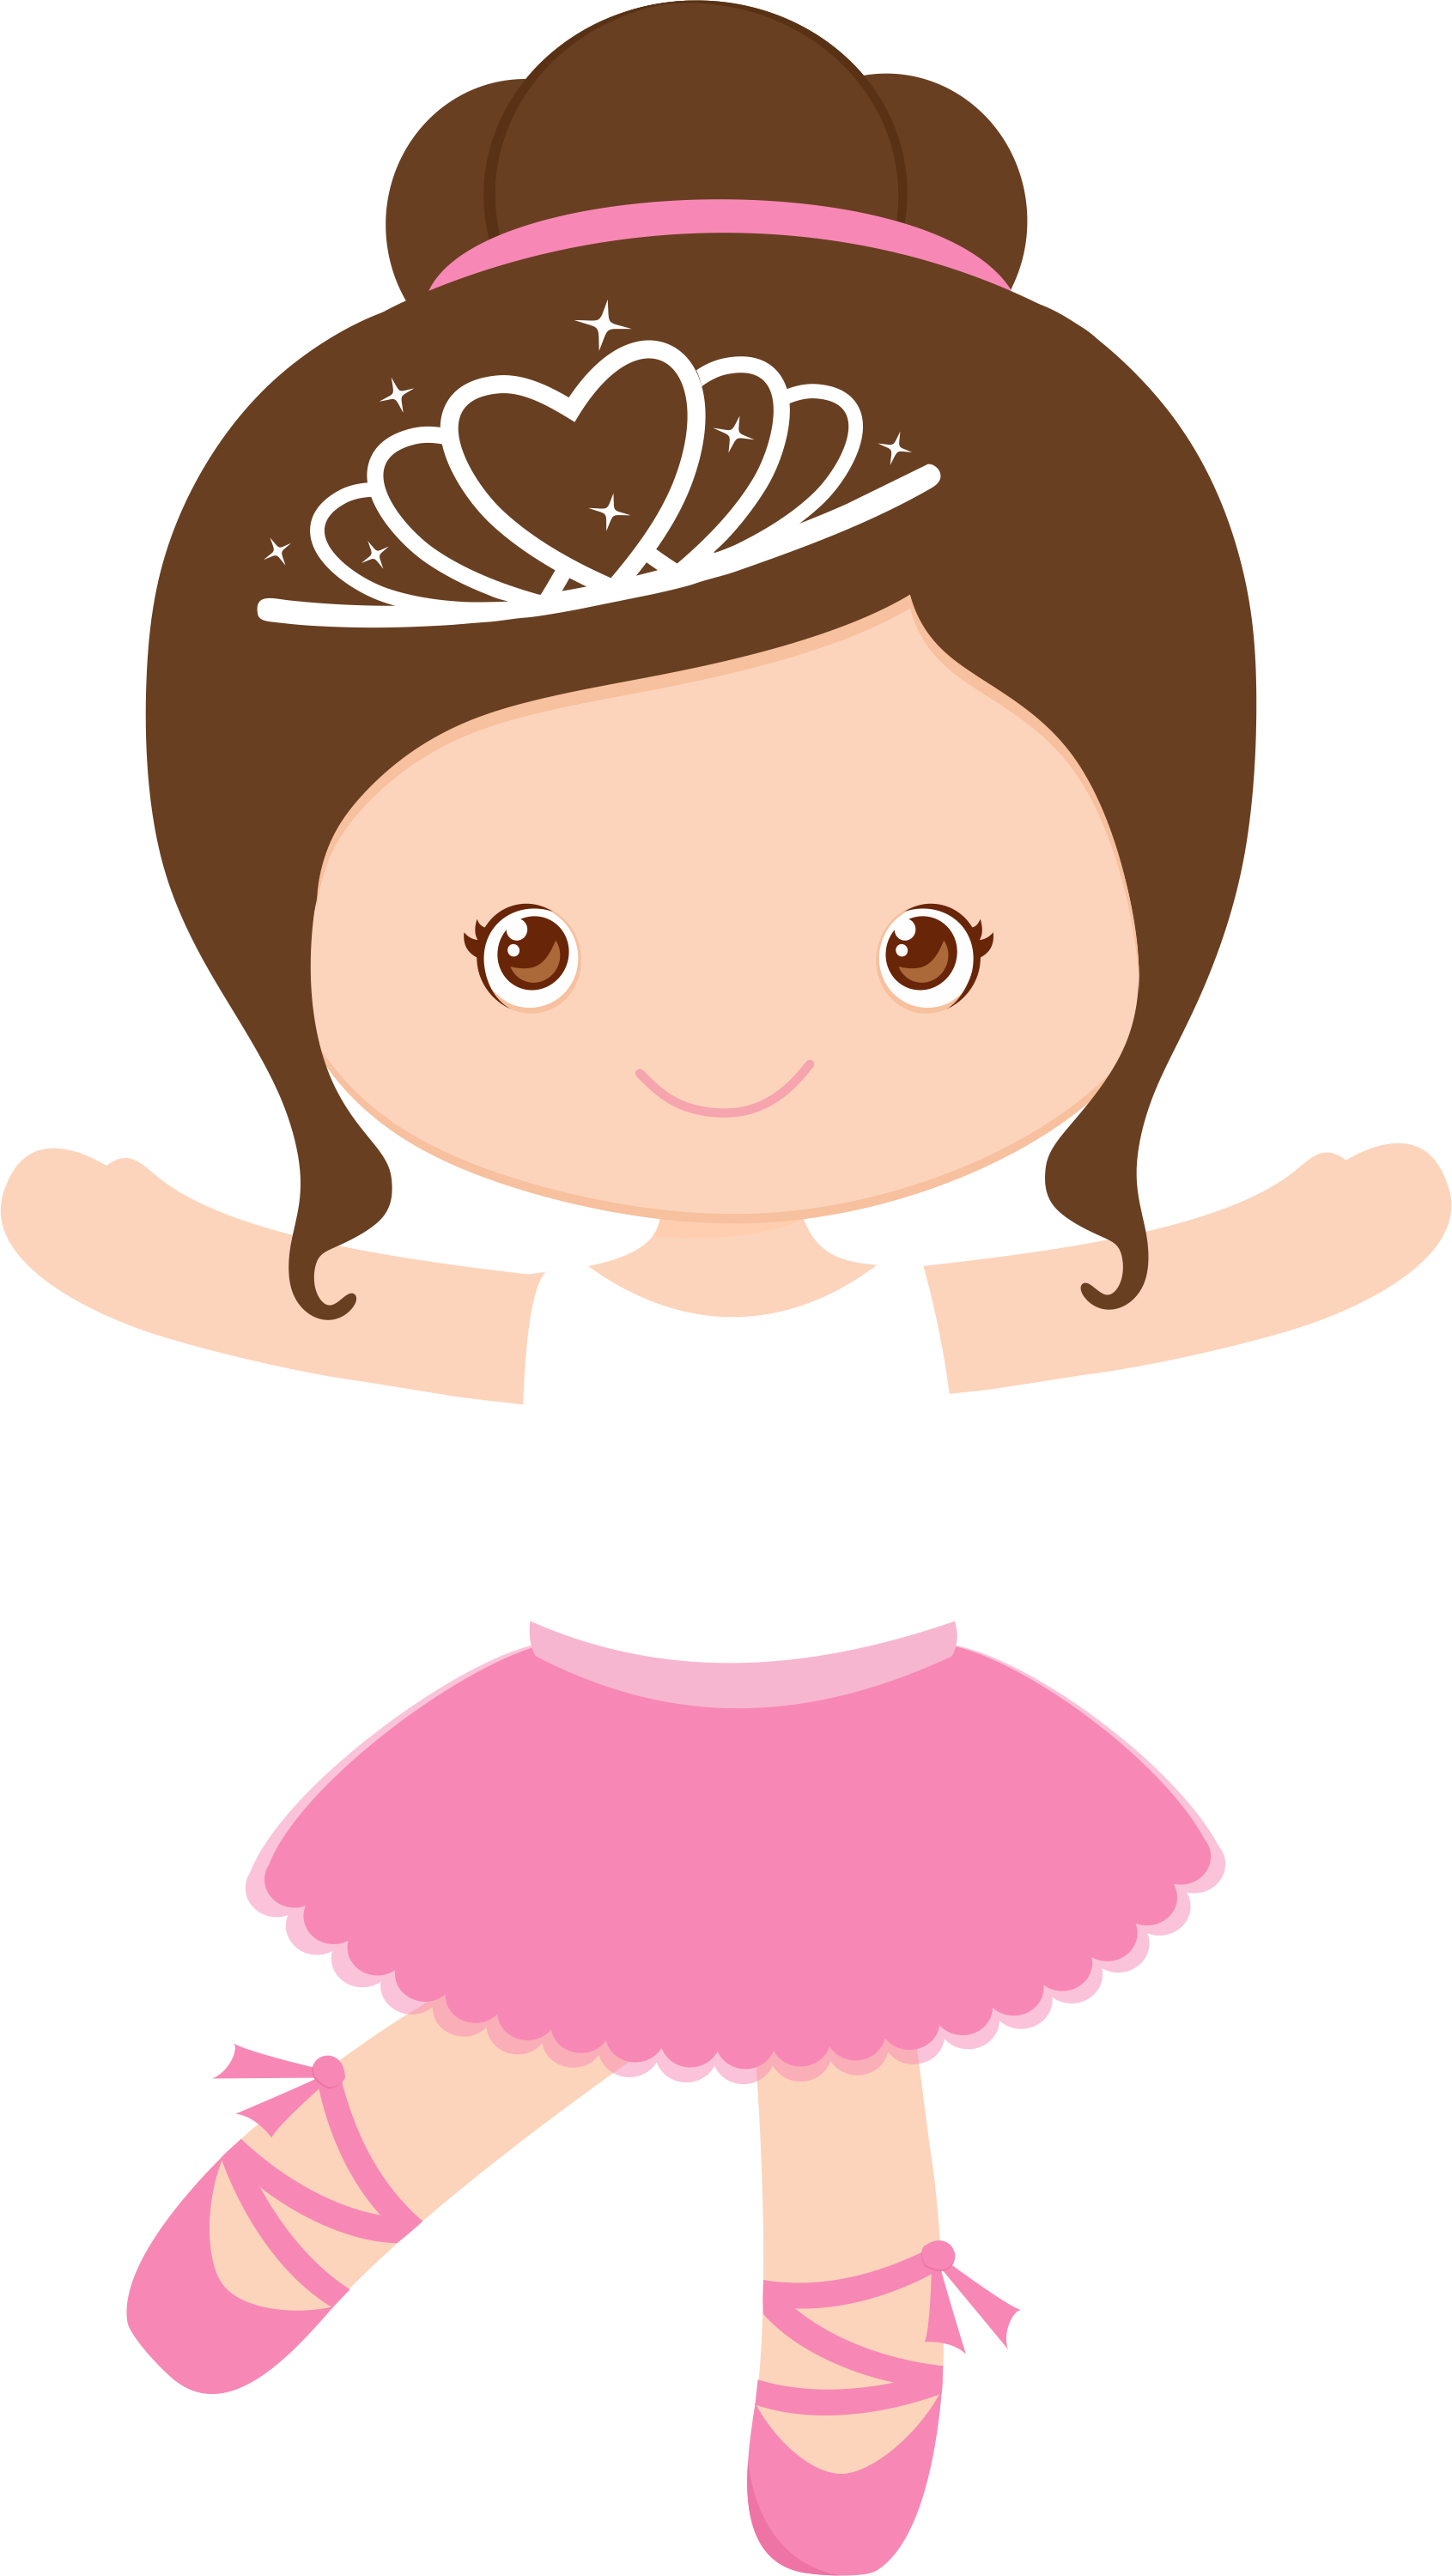 Dancing clipart spring. Id scawsgn c png